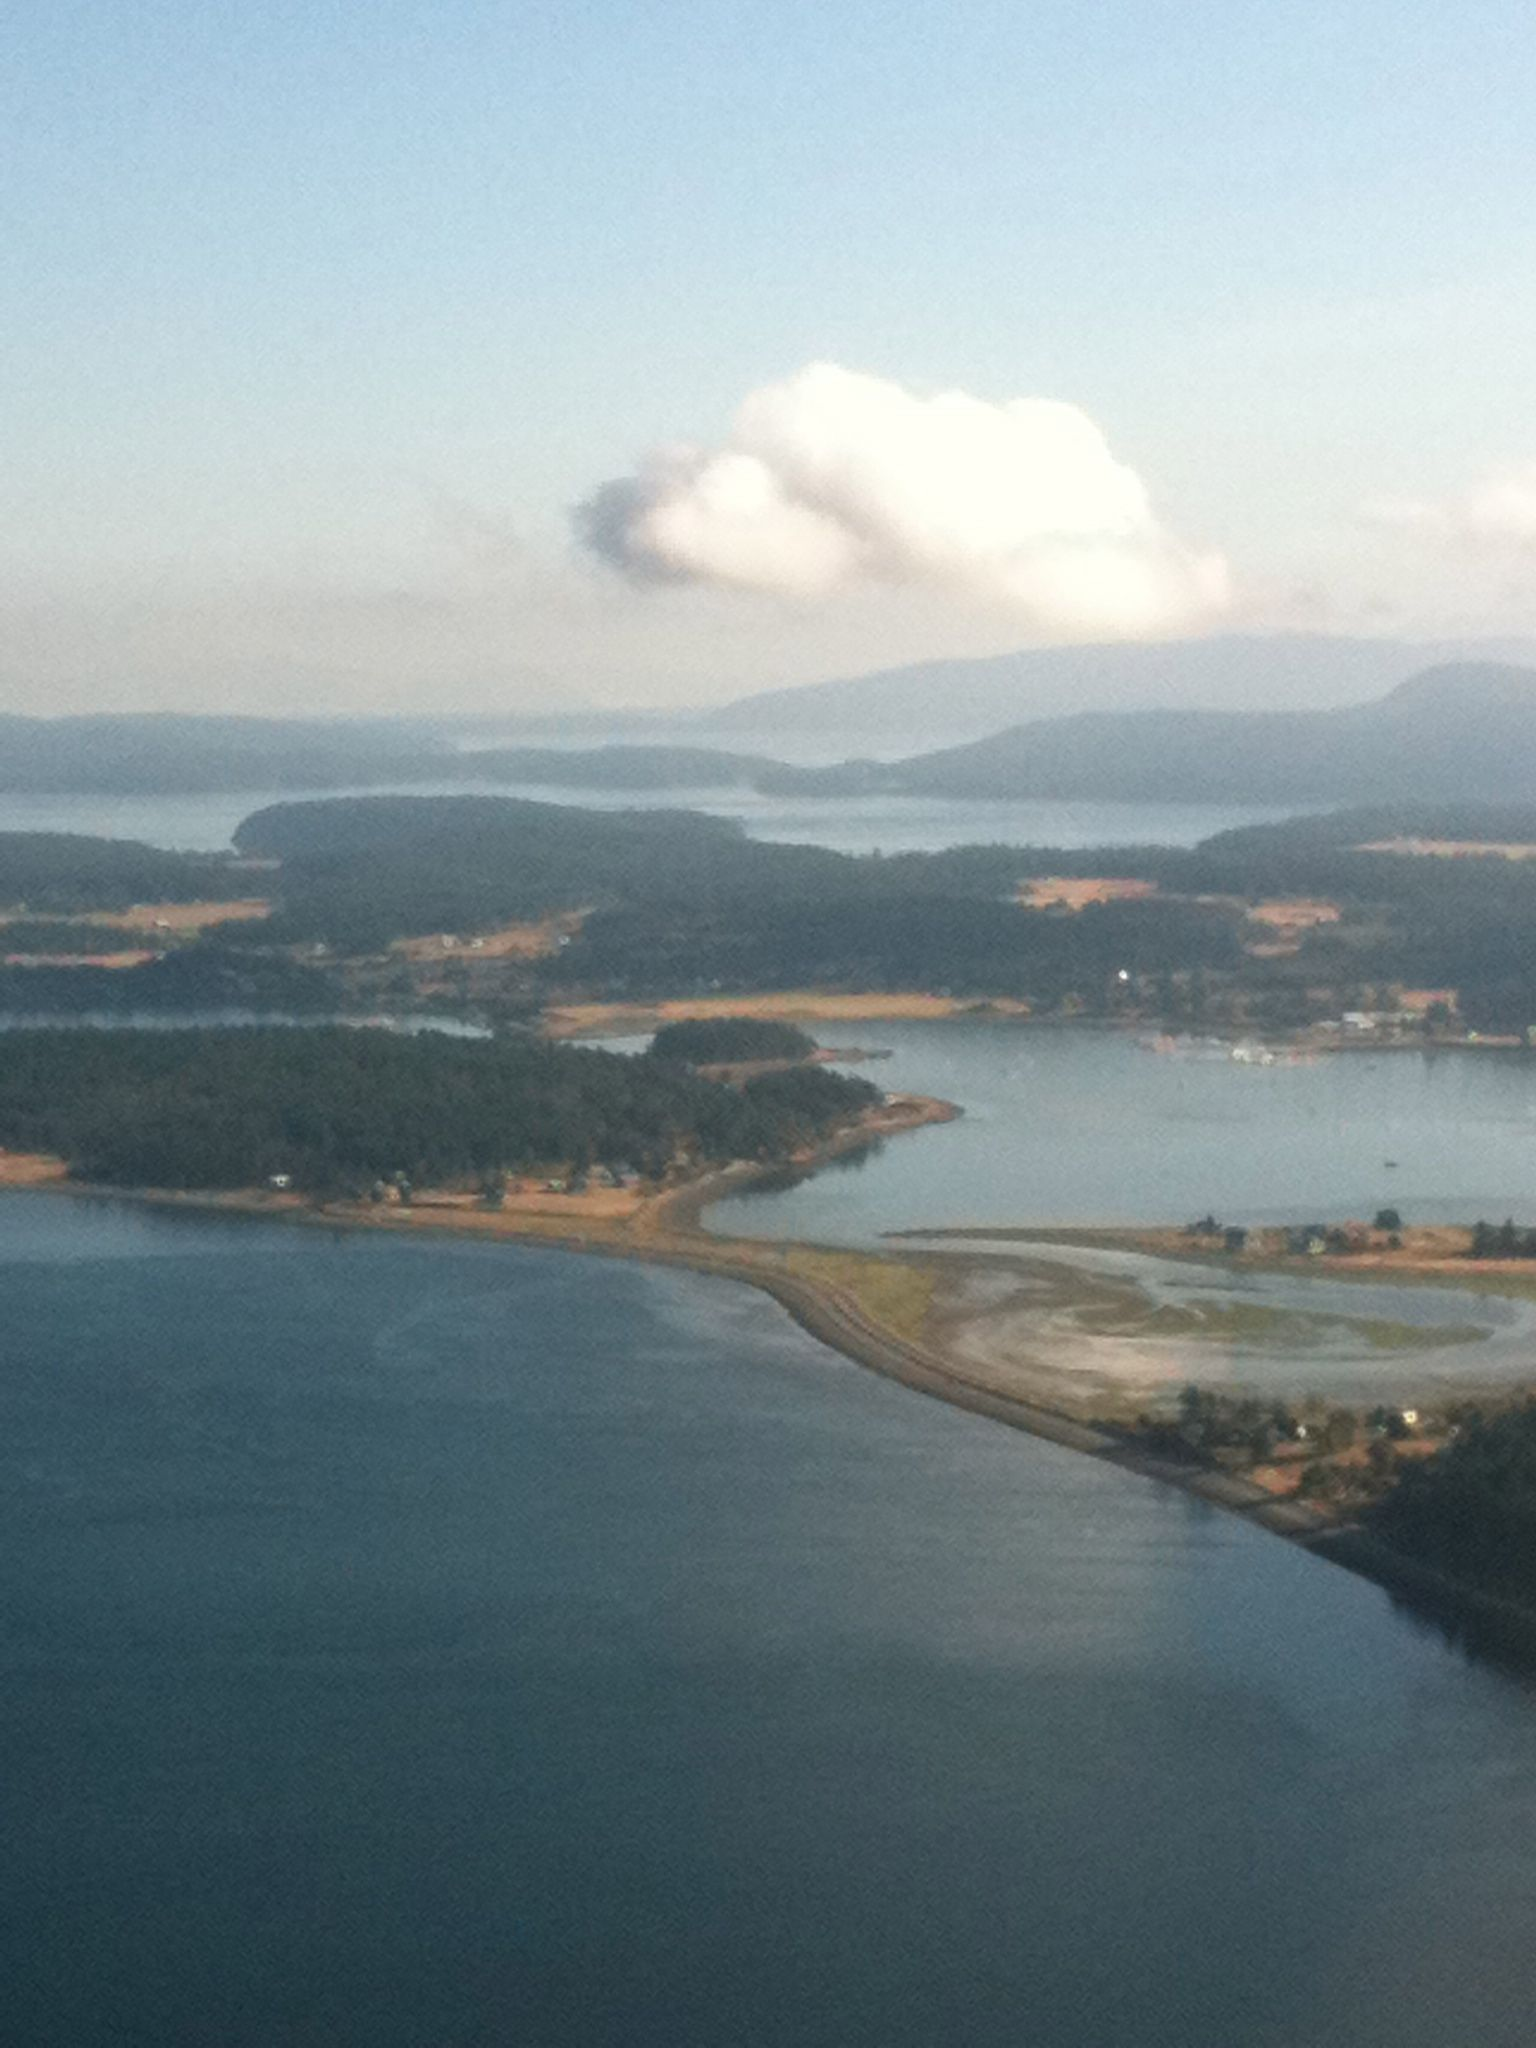 puget sound, one of my favorite places...i'll make it back